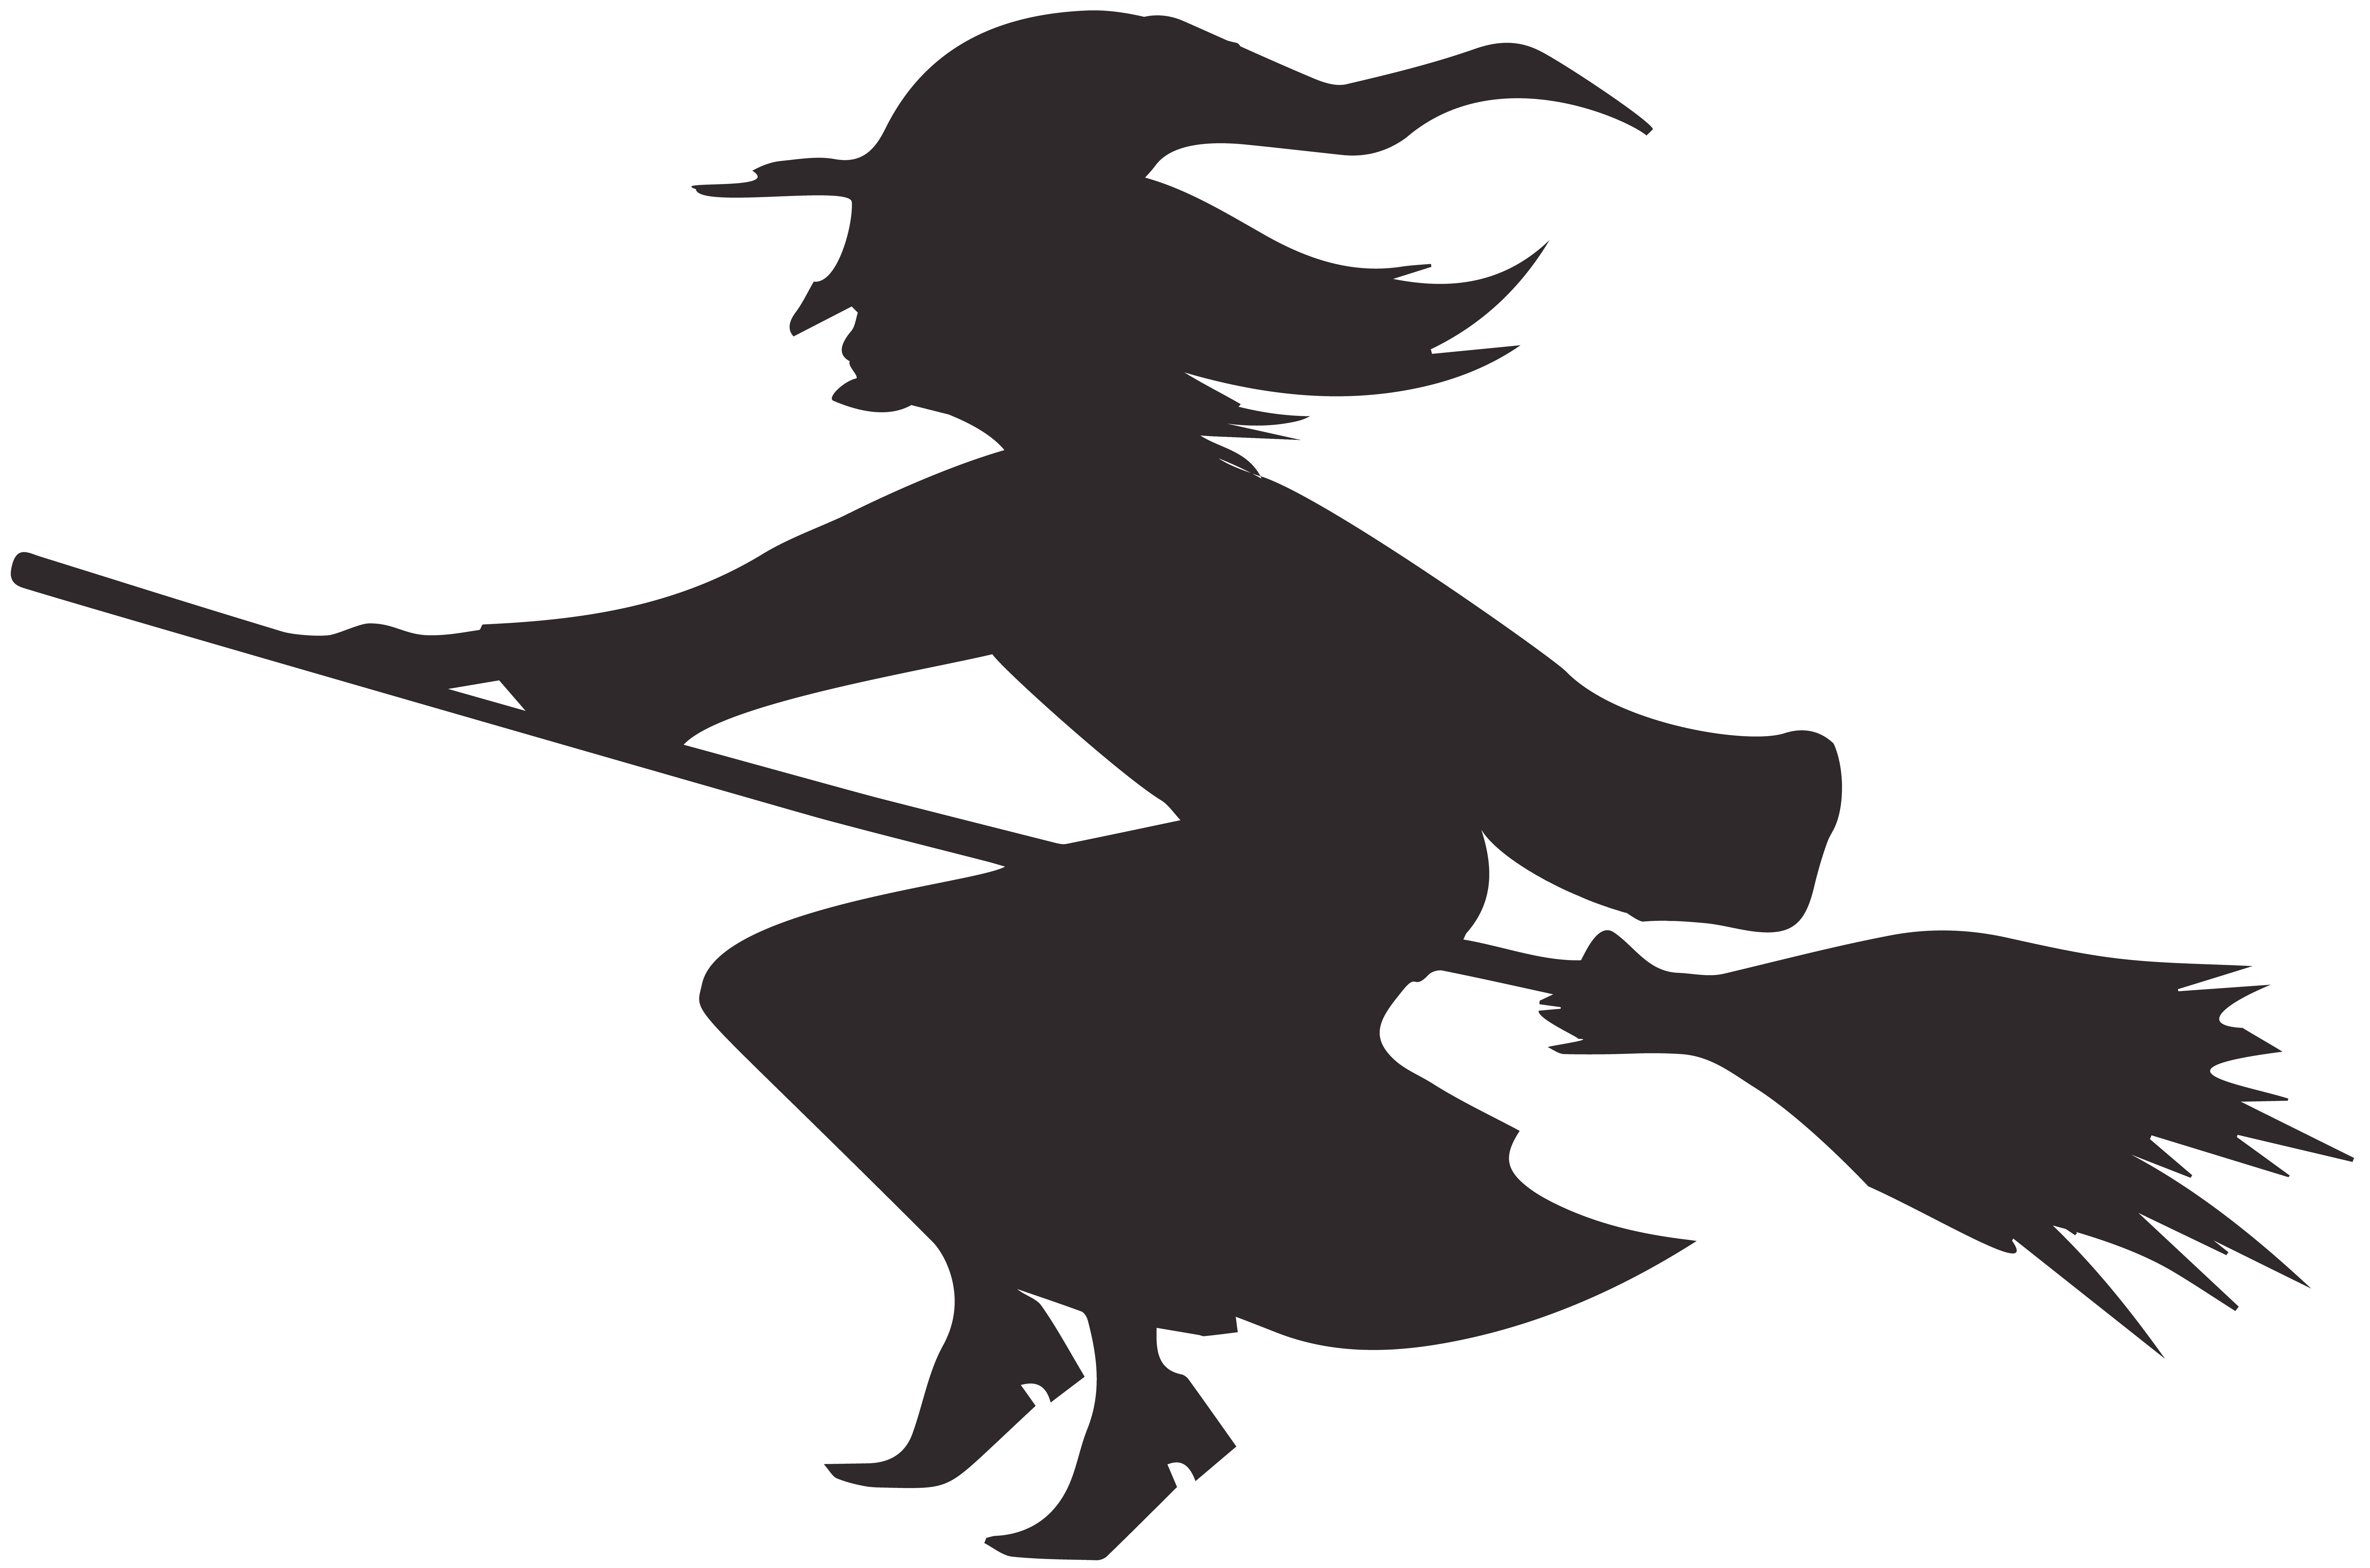 Free halloween silhouette clipart picture free download Halloween Witch Silhouette PNG Clip Art Image | Gallery ... picture free download